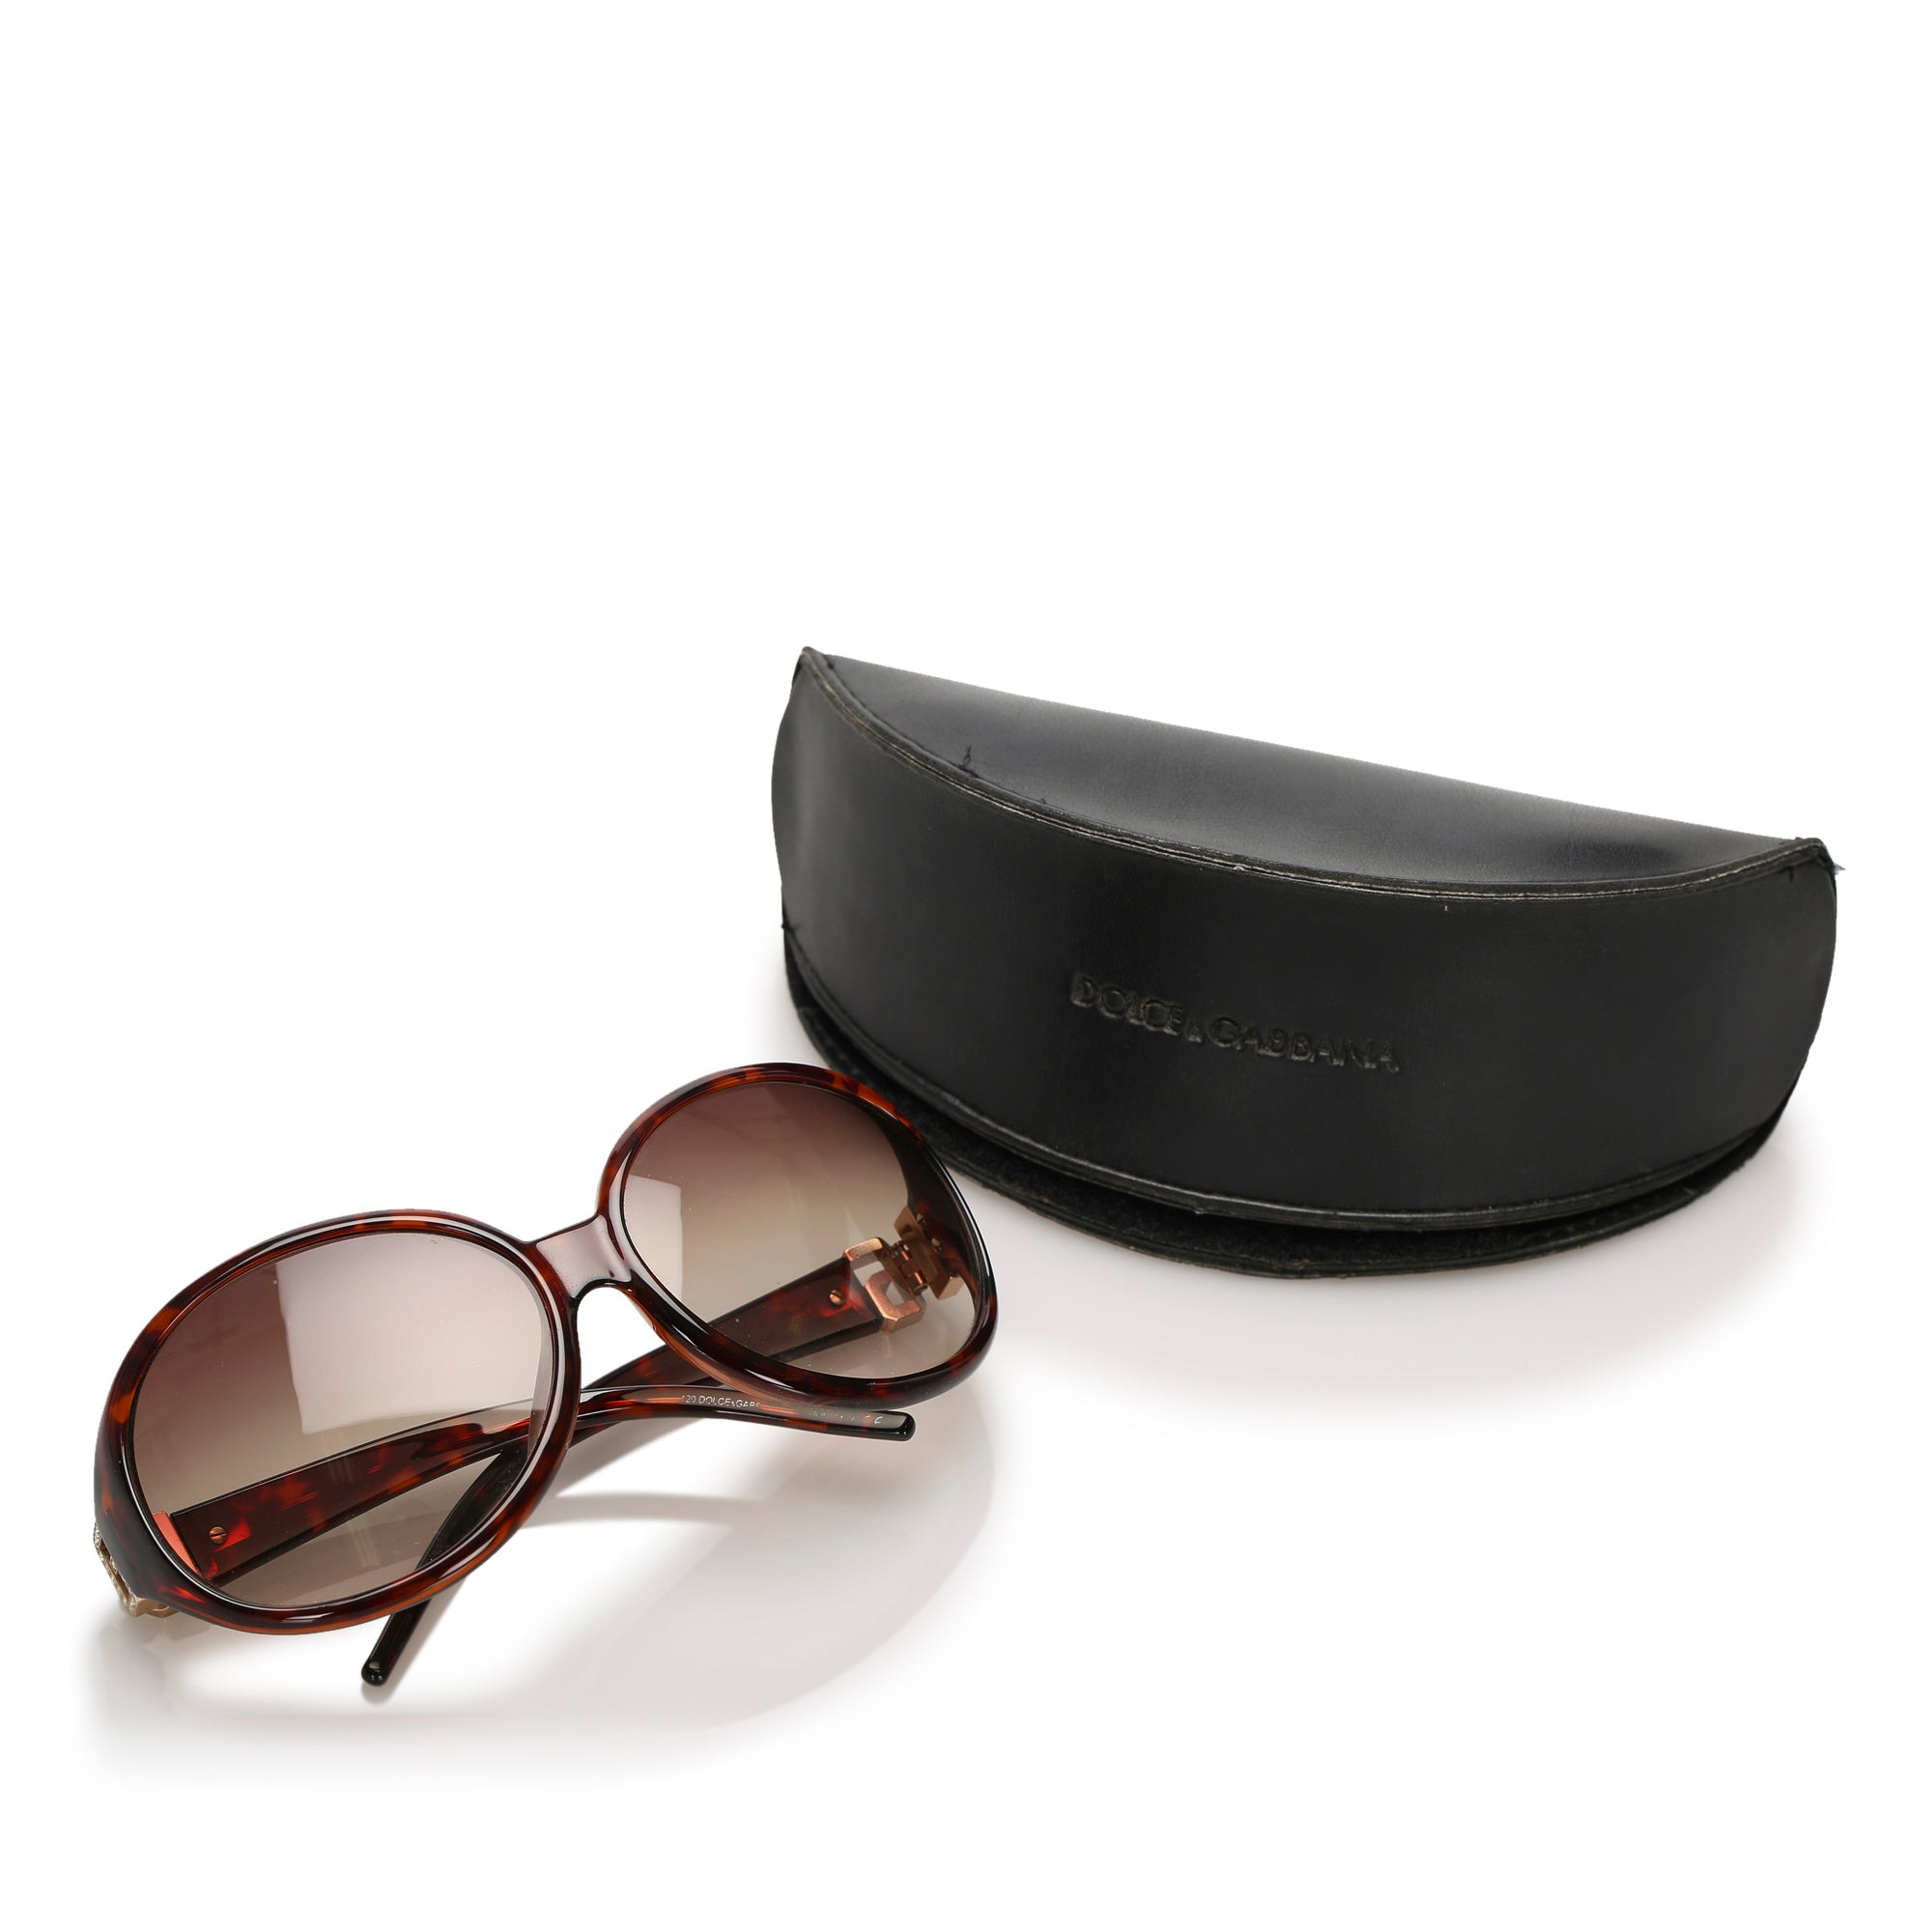 Dolce&Gabbana Brown Round Tinted Sunglasses